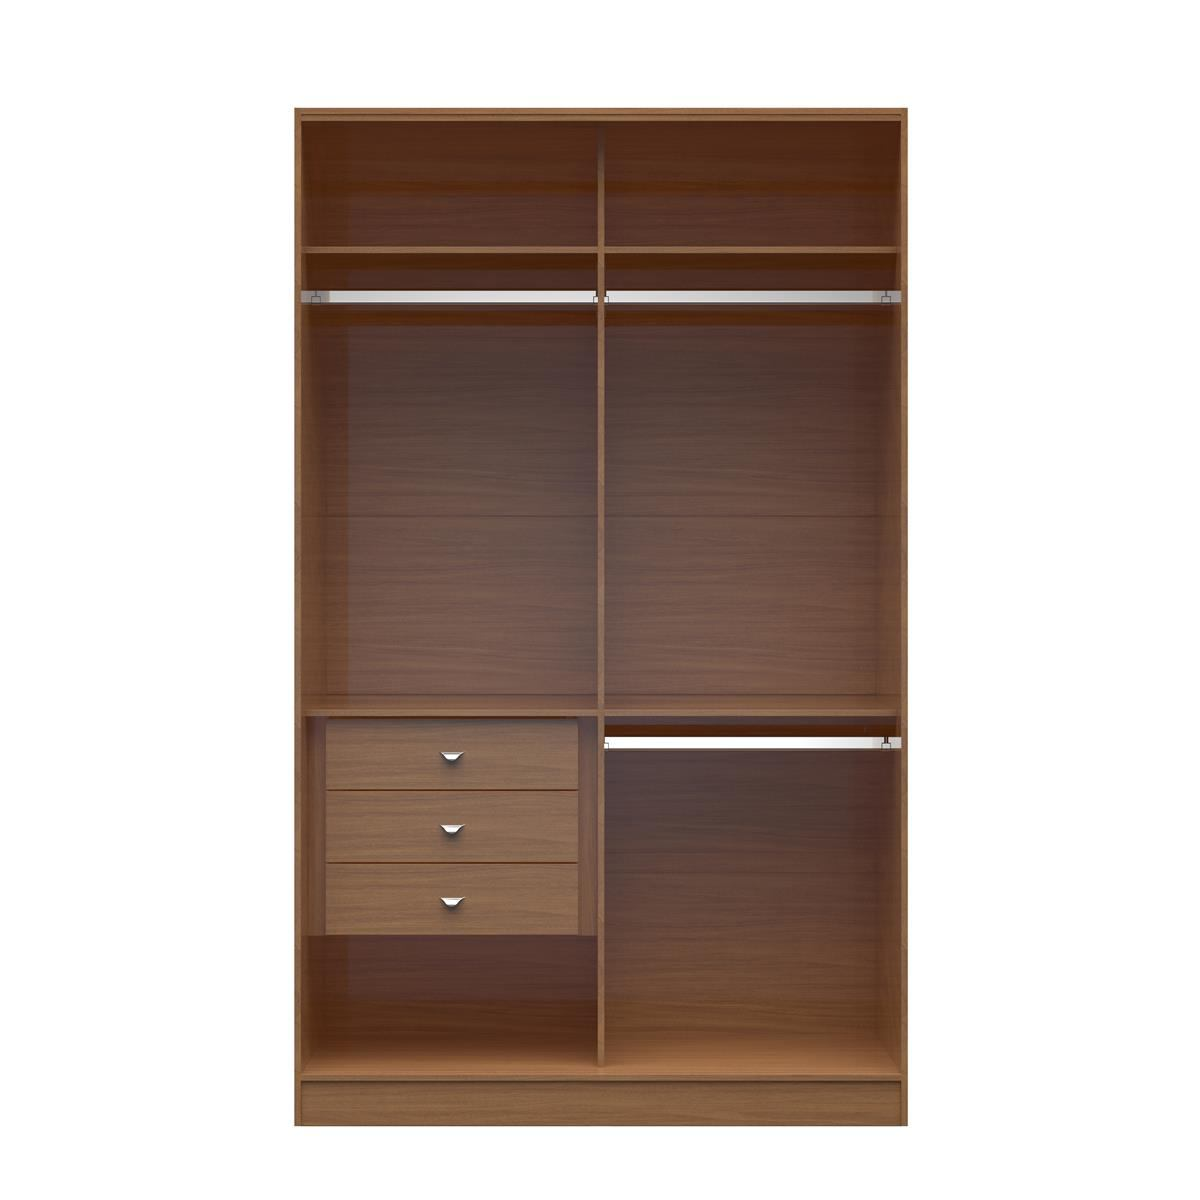 Manhattan Comfort  Chelsea 1.0 Double Basic Wardrobe with 3 Drawers  in Maple Cream 116951